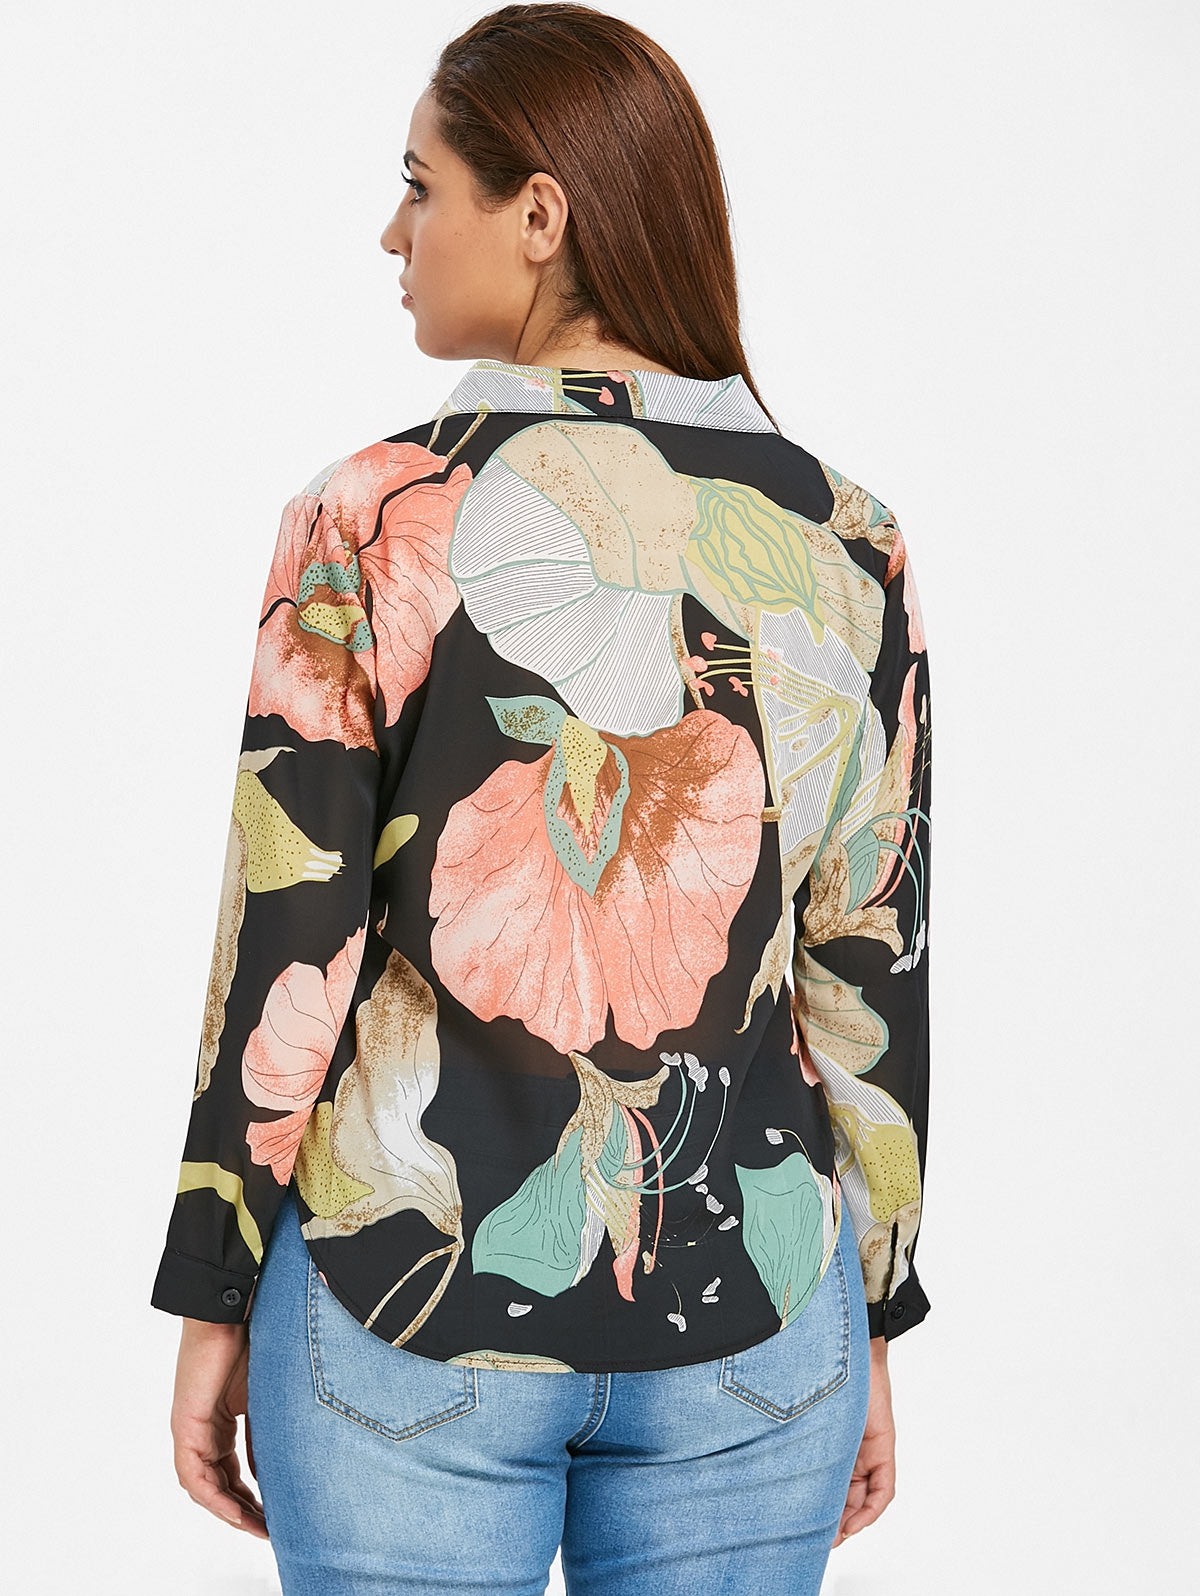 Semi-sheer Floral Plus Size Shirt - olivias-room-boutique